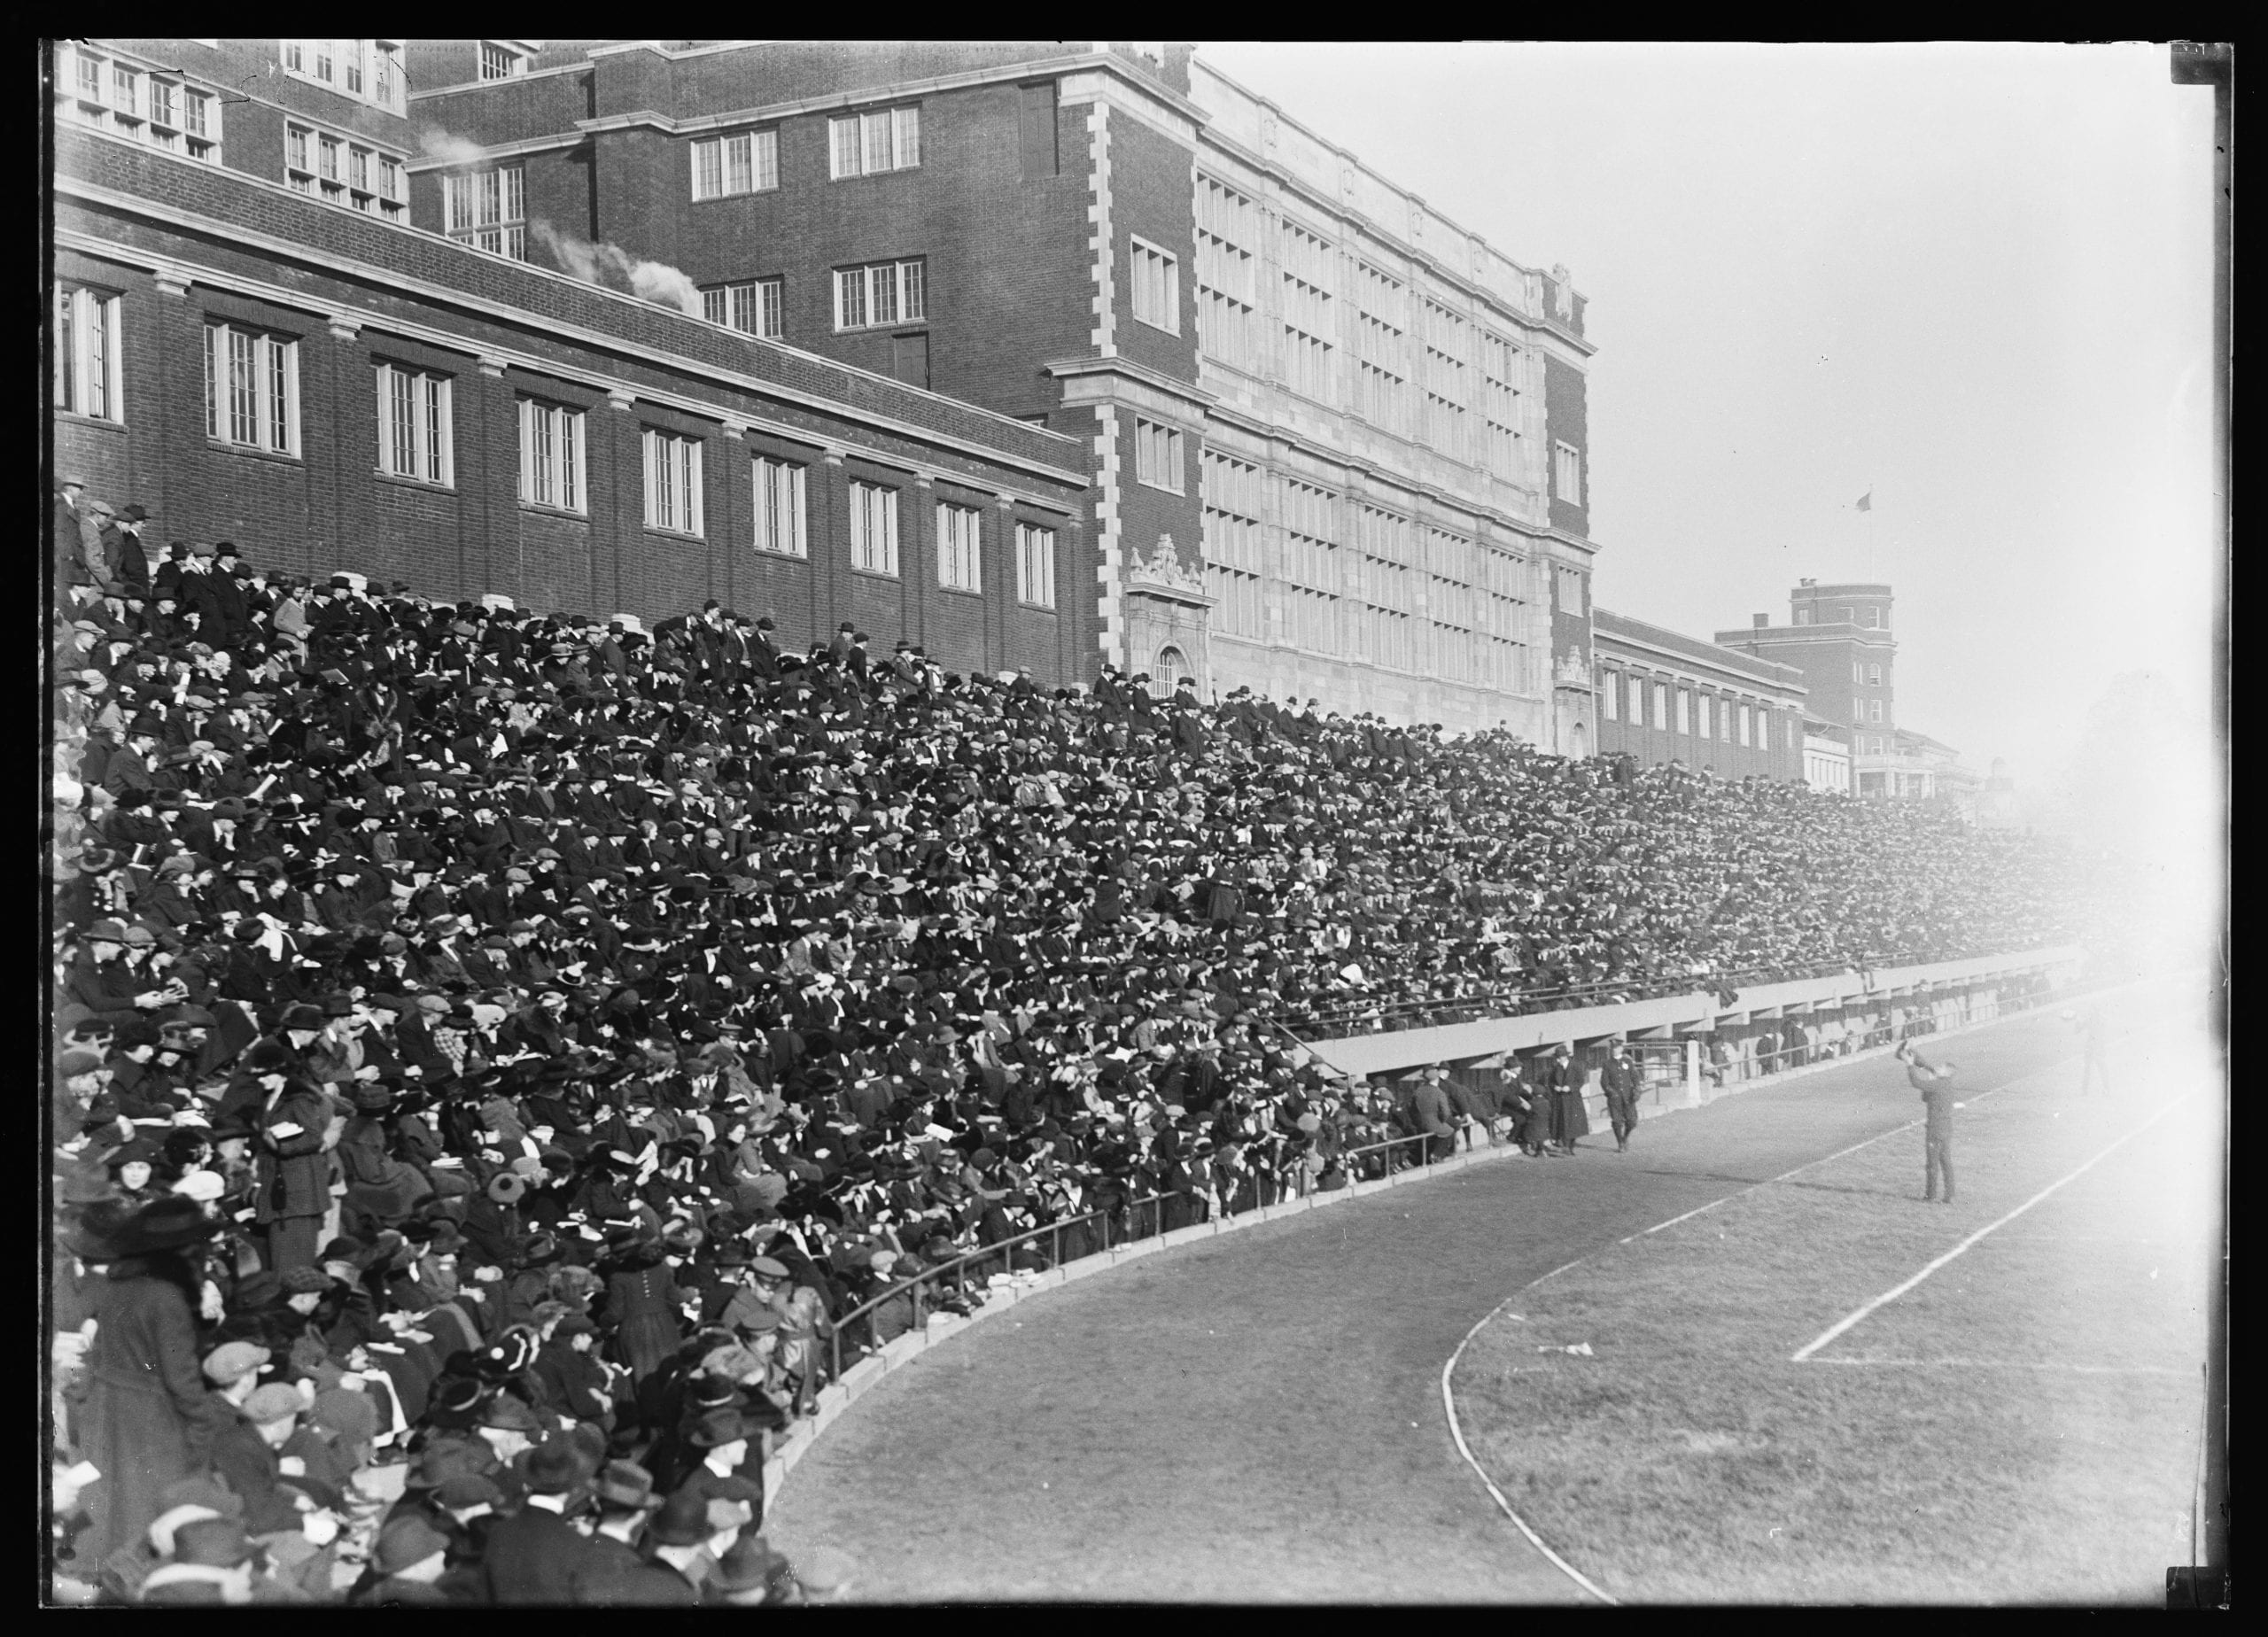 Central High School football game - May 5th, 1920